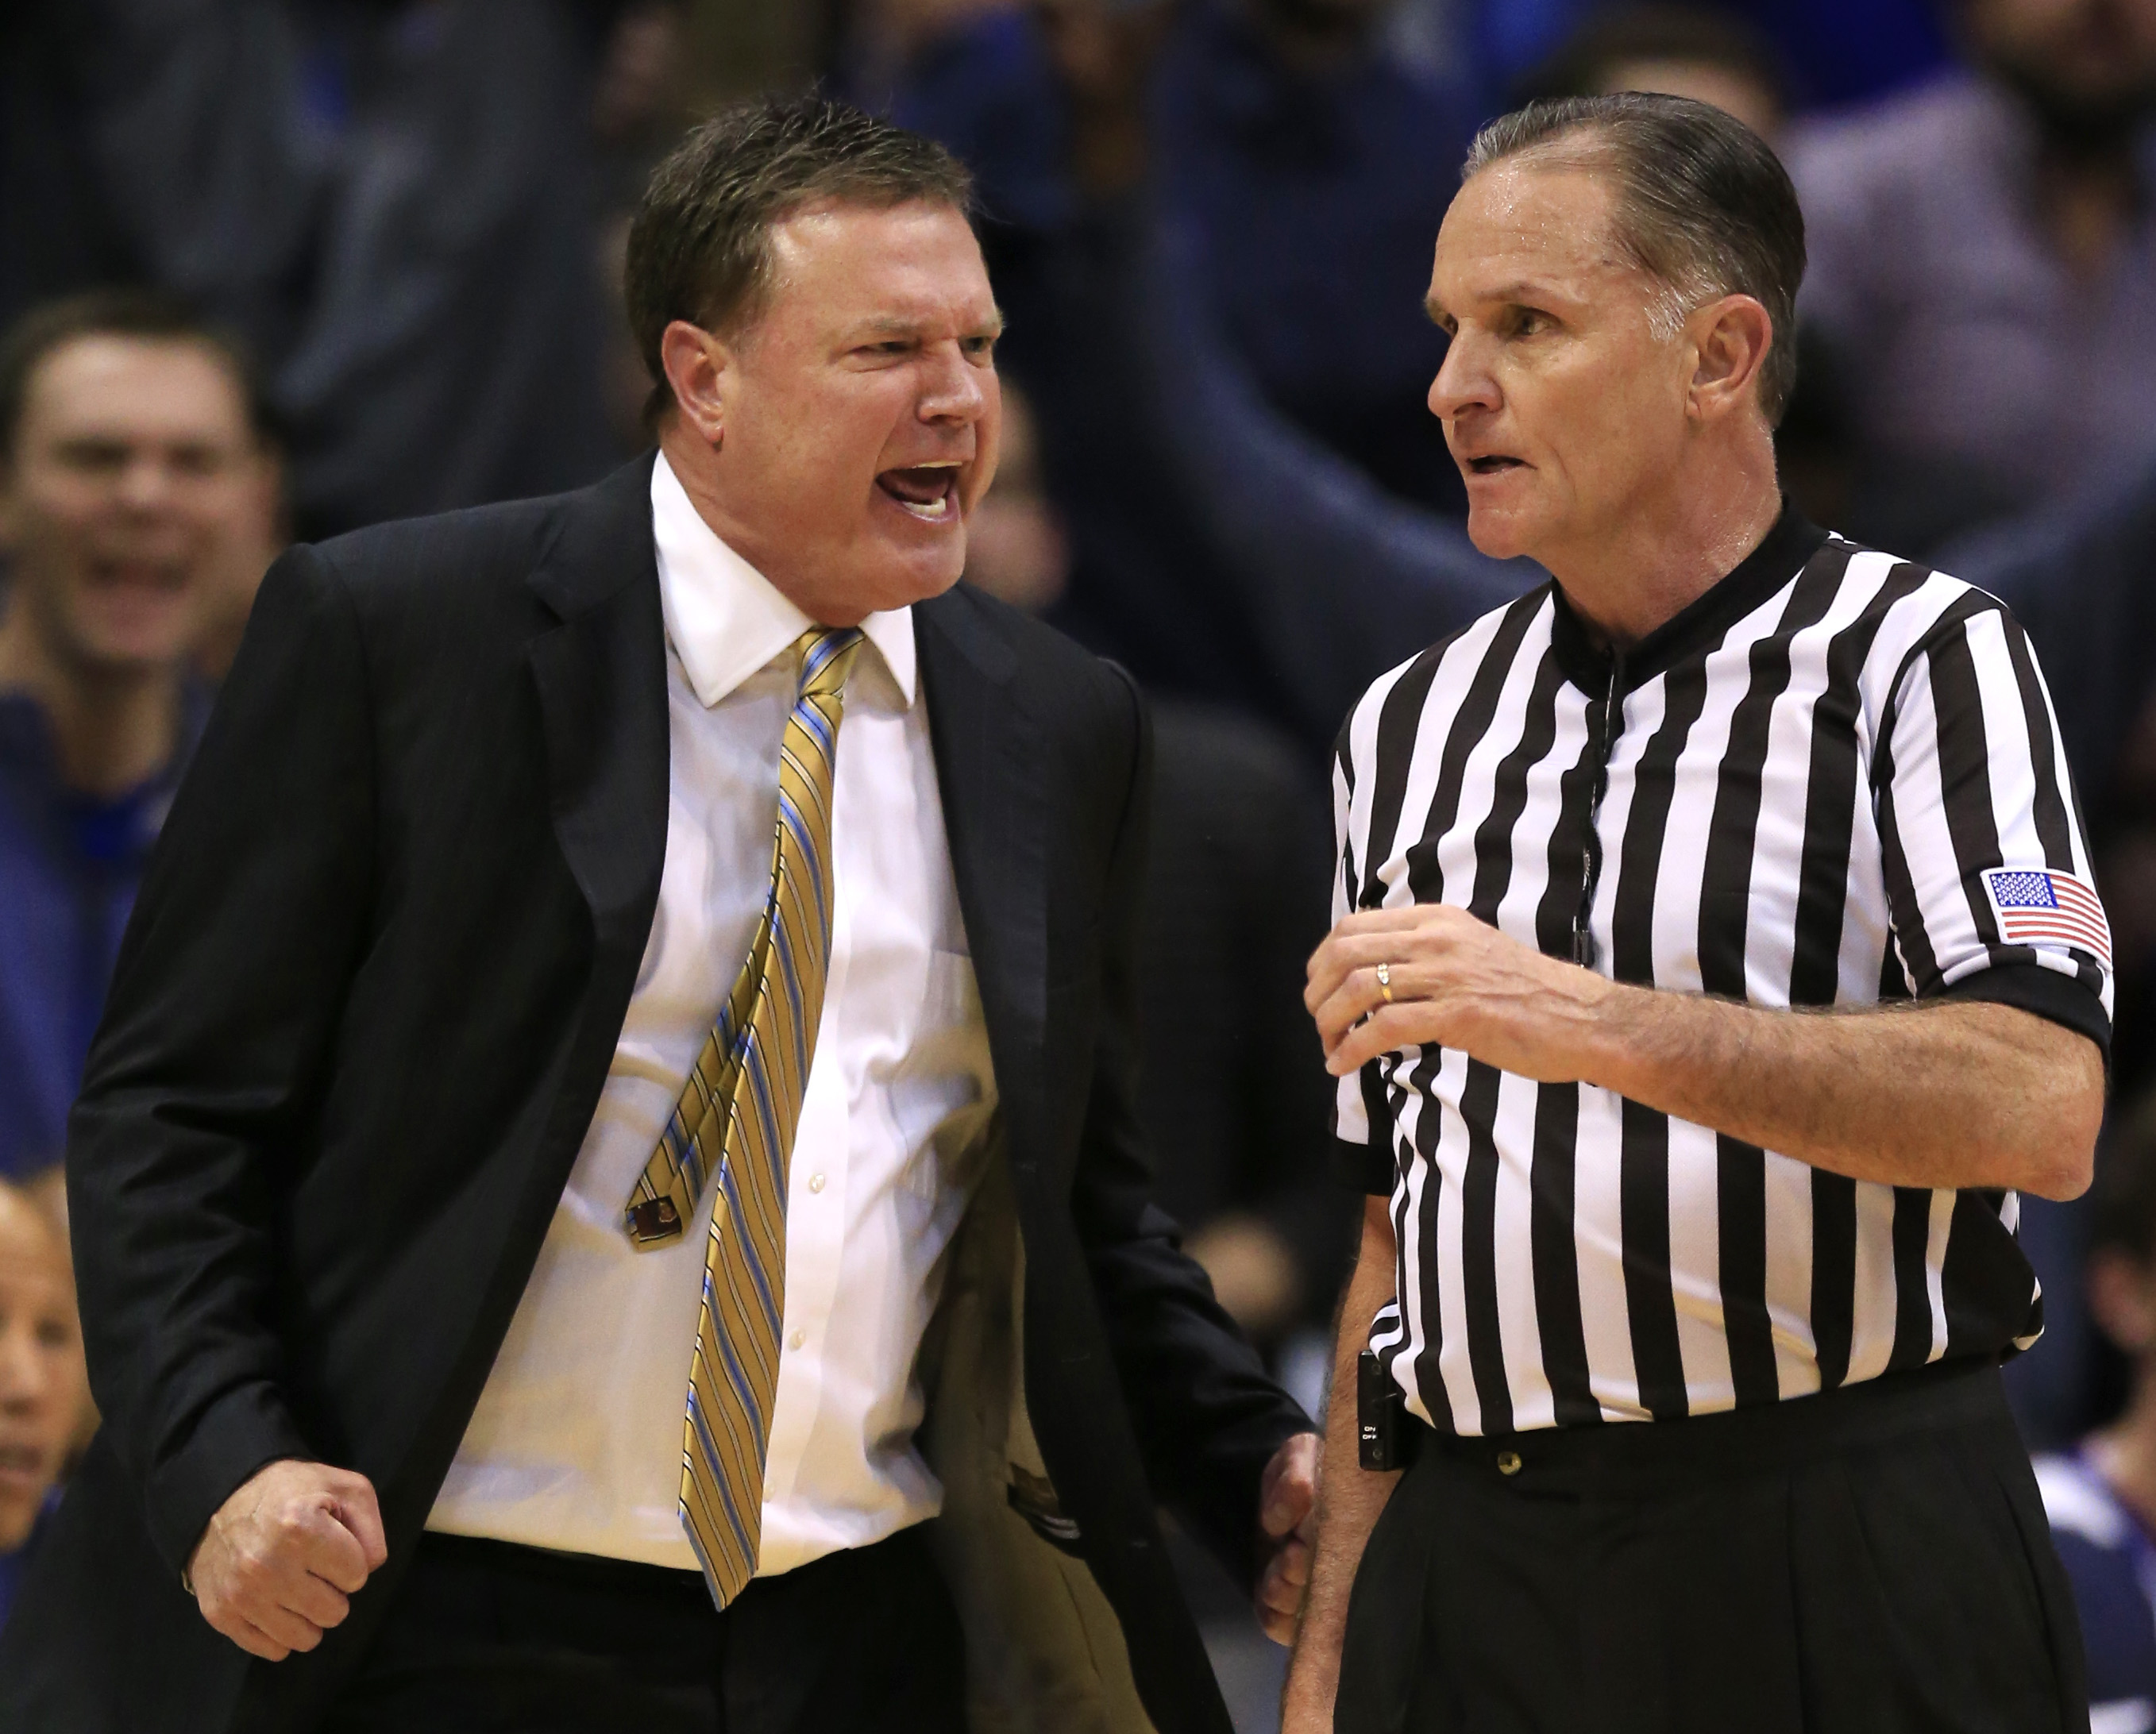 Kansas head coach Bill Self, left, objects to a call by referee Kelly Self, right, during the first half of an NCAA college basketball game in Lawrence, Kan., Monday, Jan. 4, 2016. (AP Photo/Orlin Wagner)